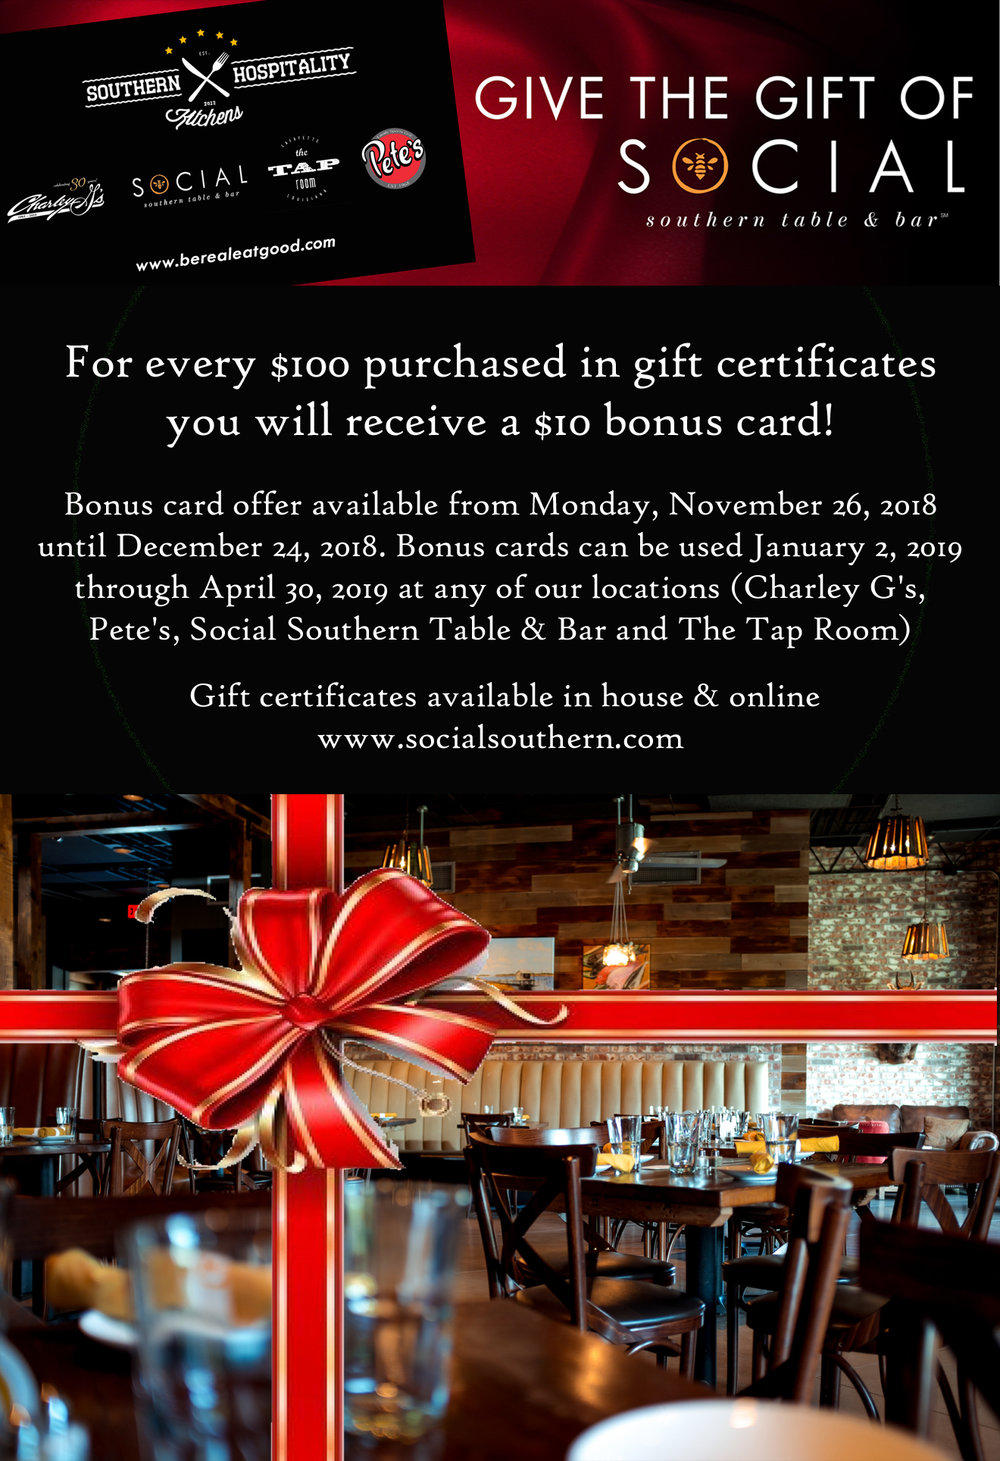 gift card as gifts SOCIAL.jpg